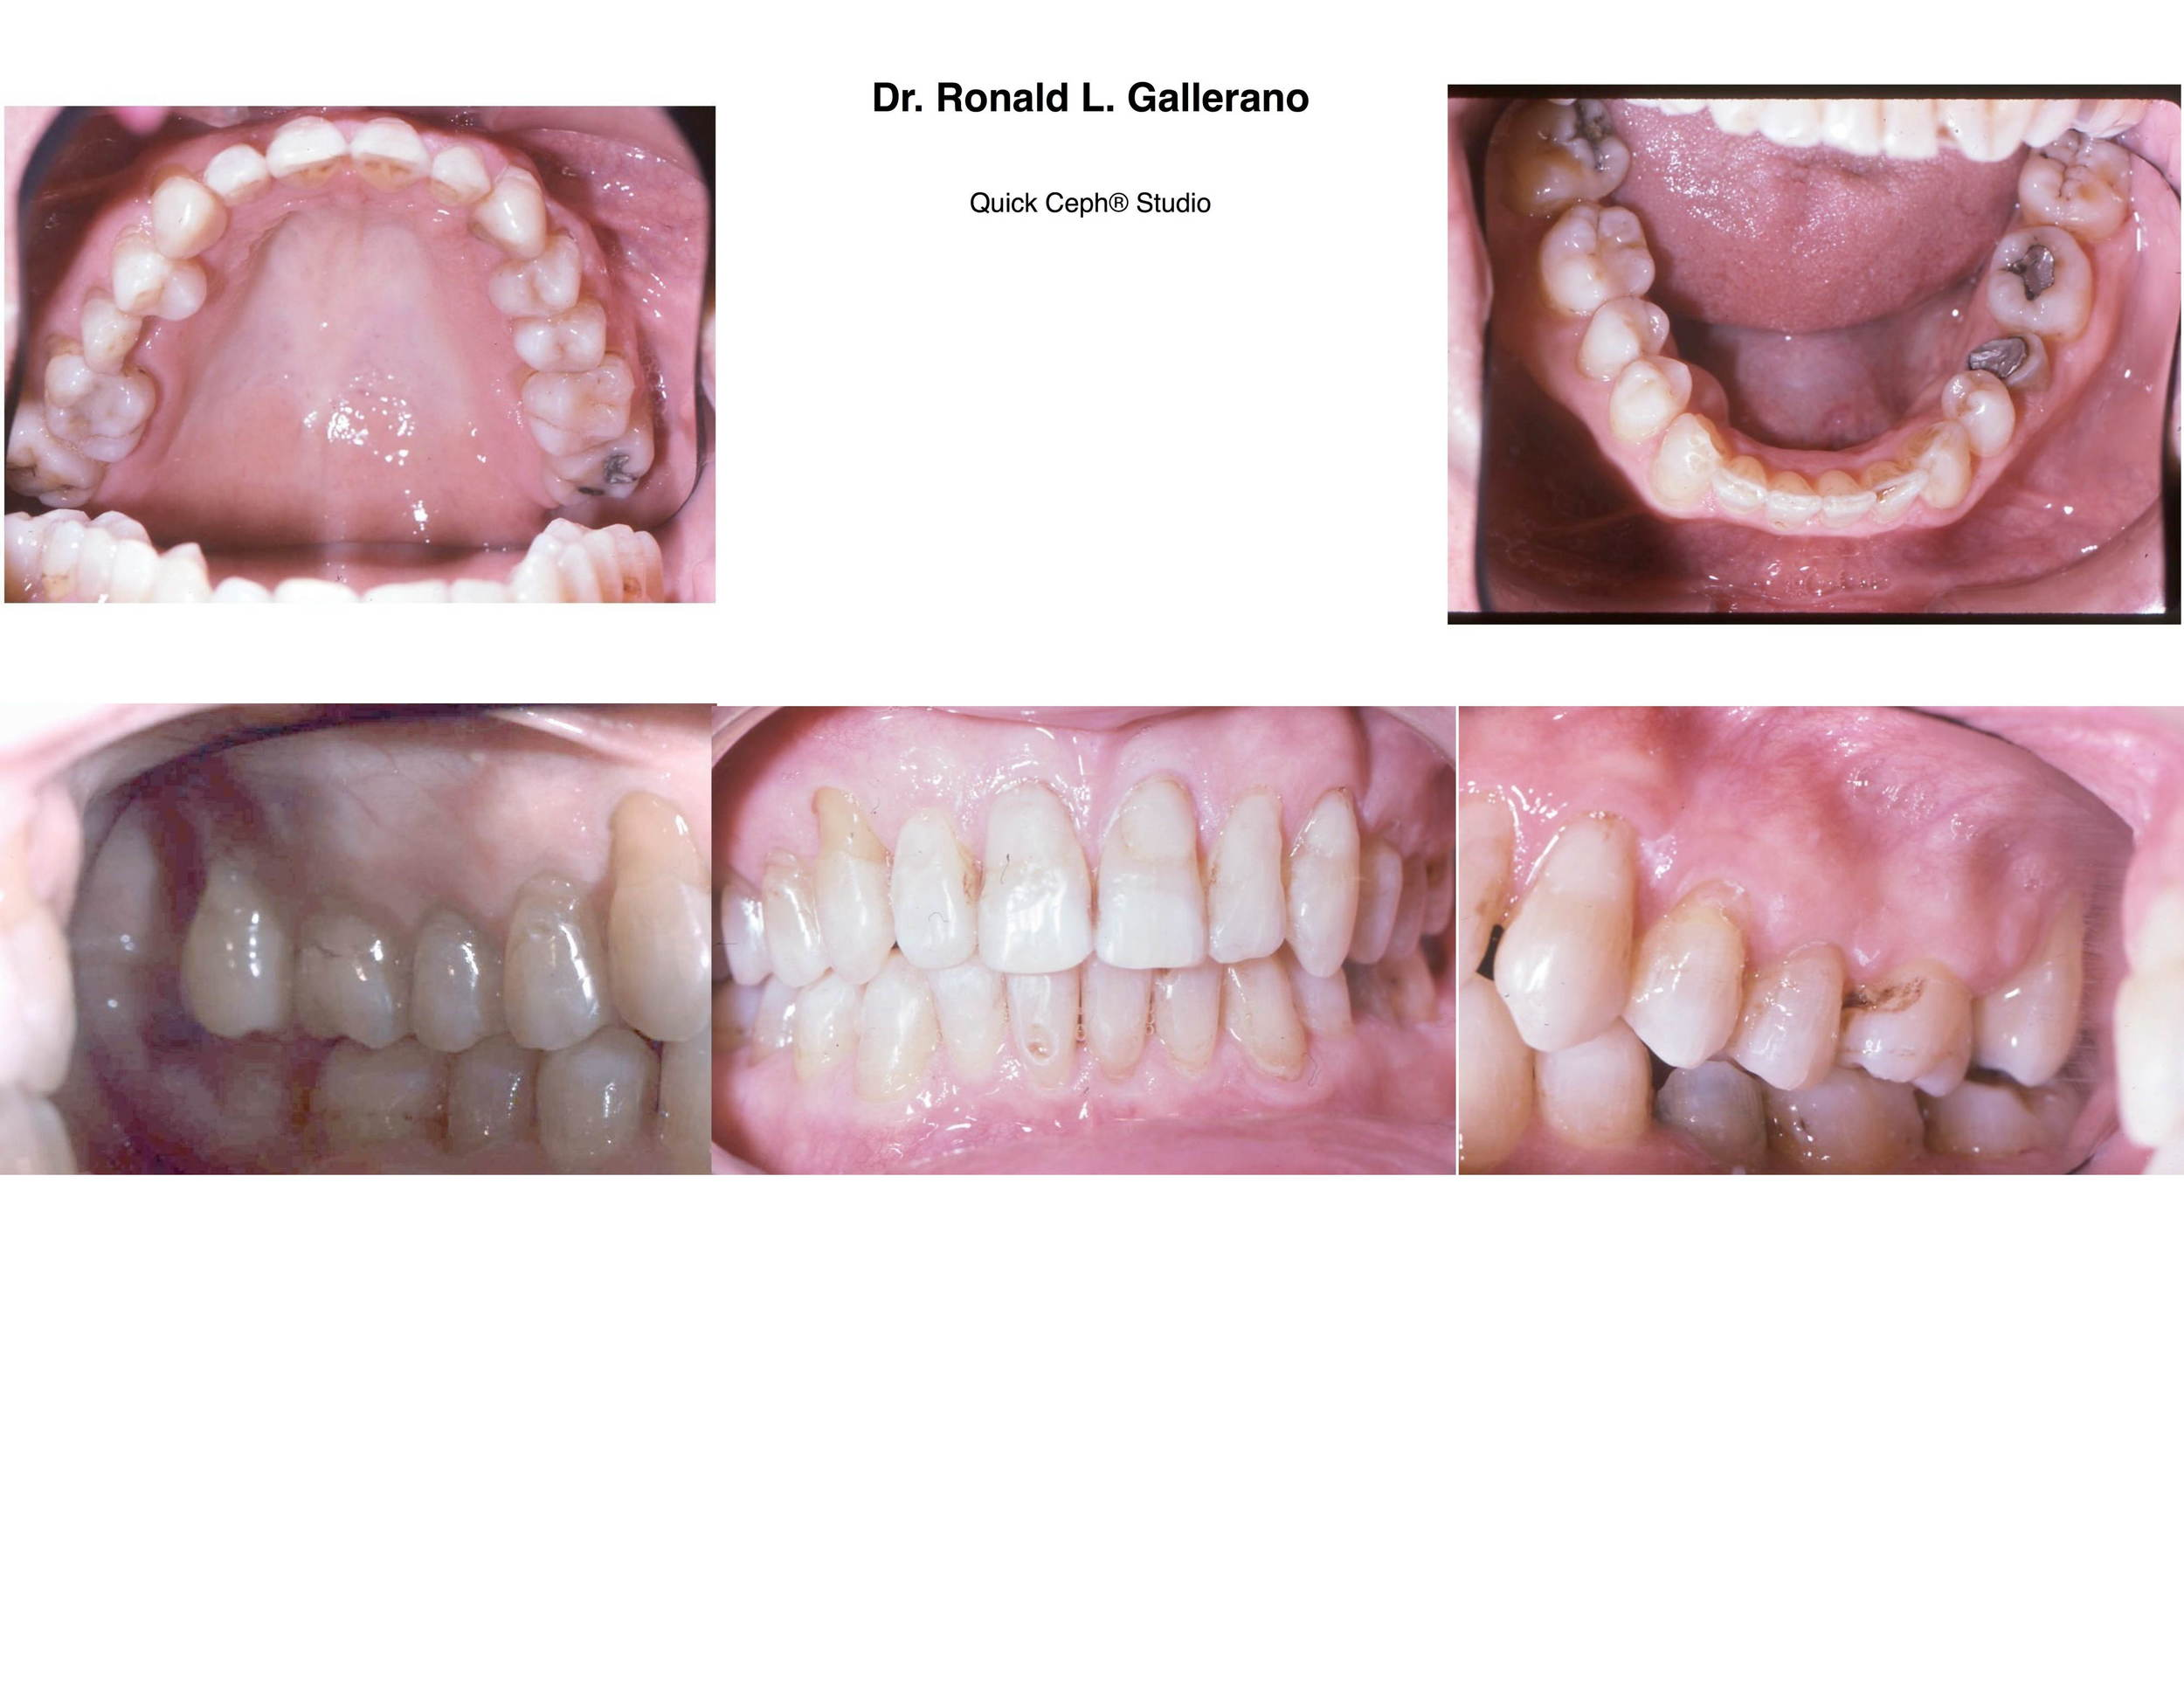 G.H. - After orthodontics